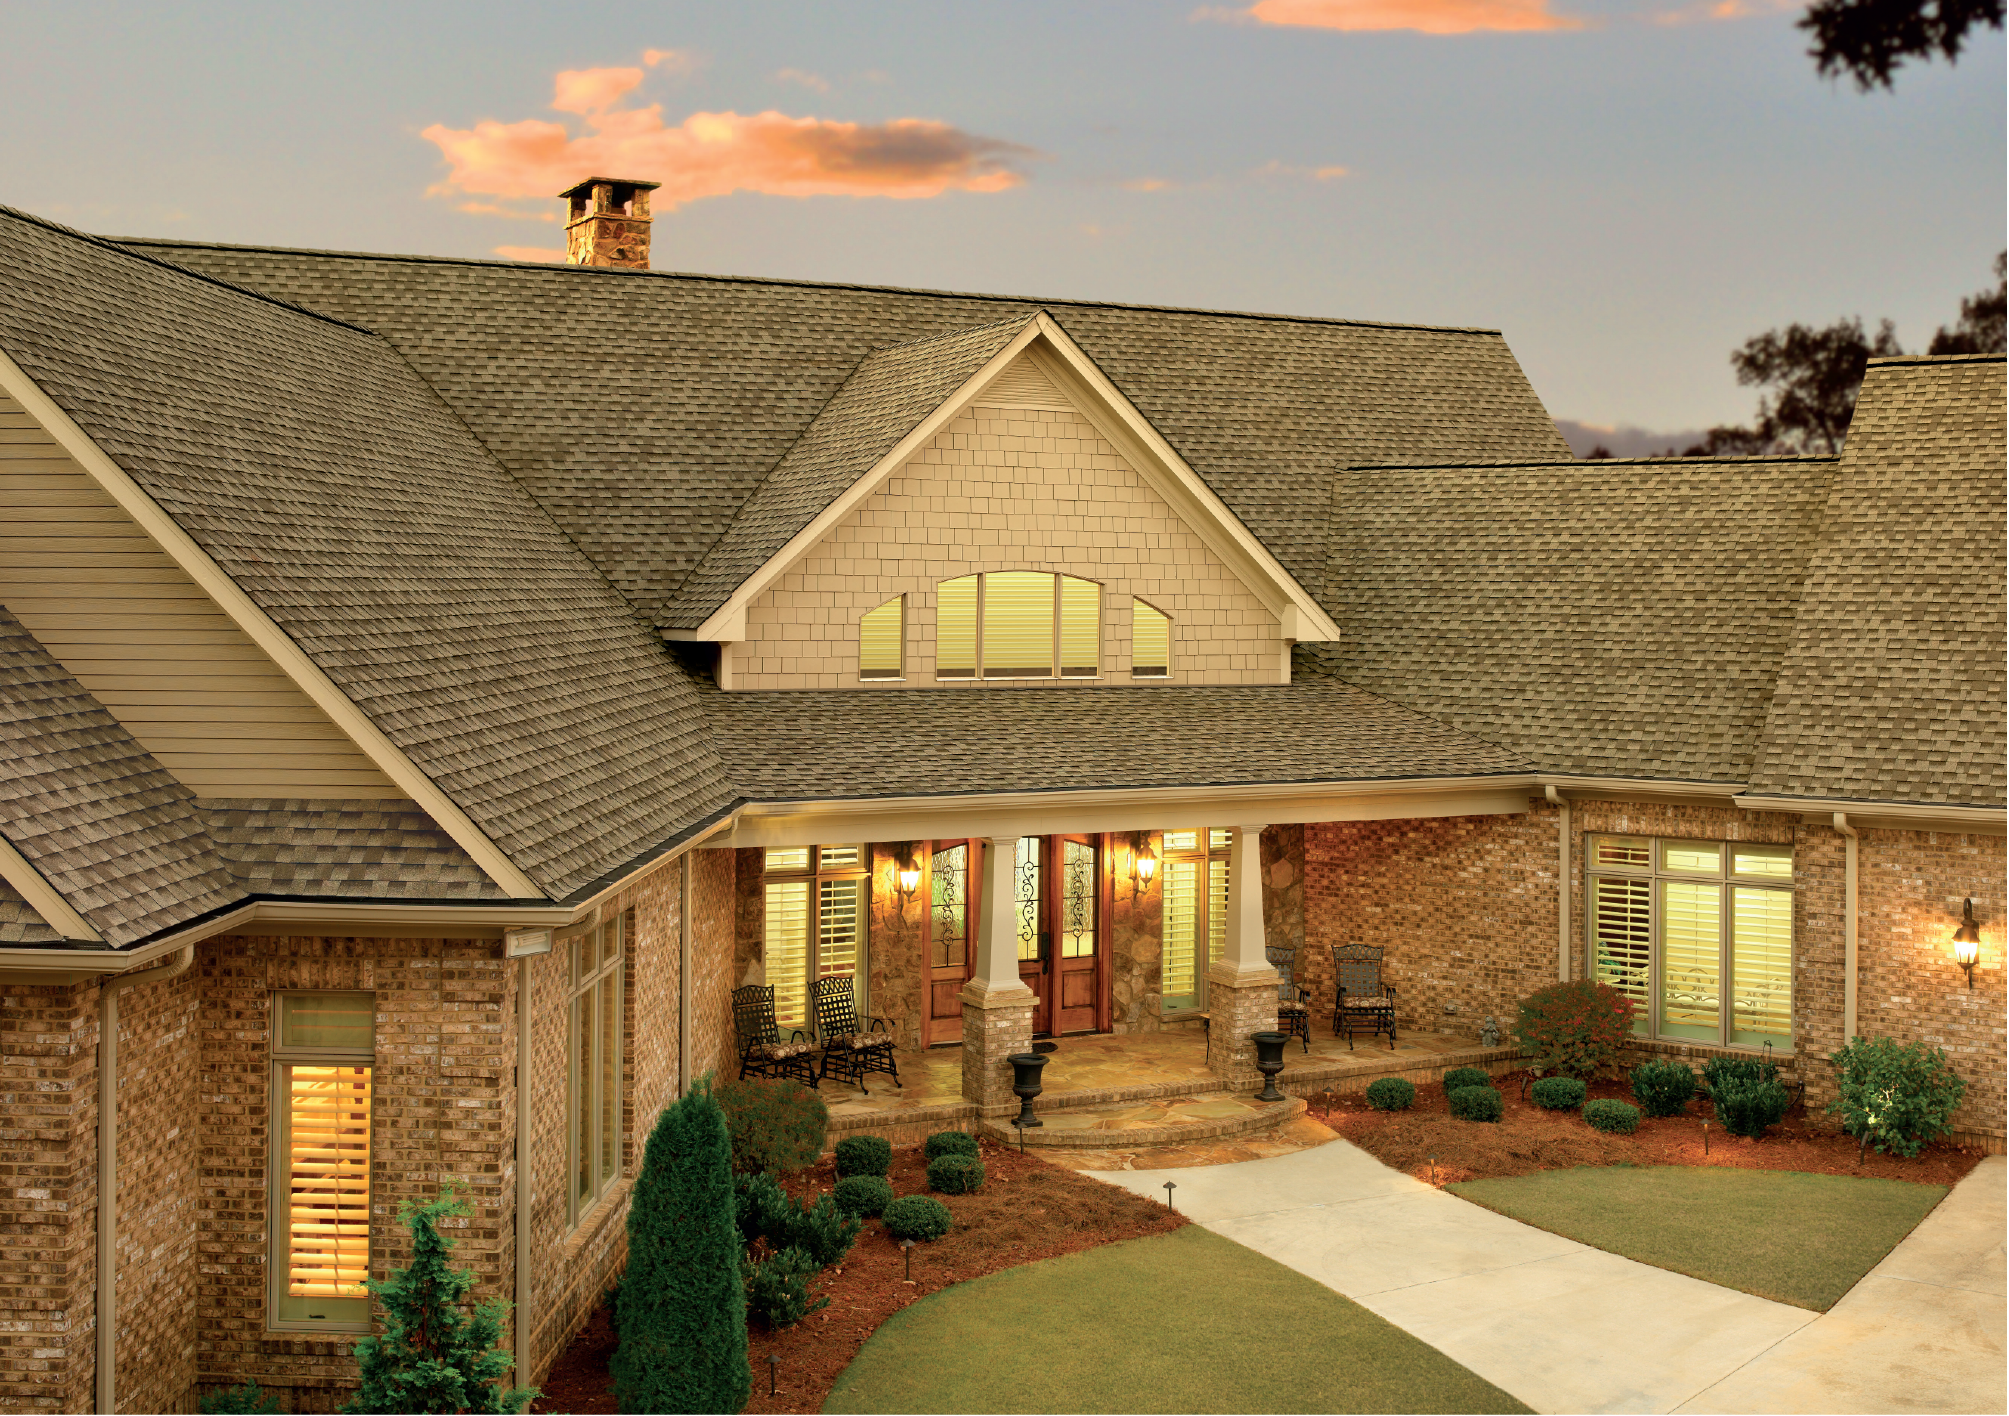 pretty home exterior design using gray gaf timberline hd roofing matched with brick siding and wooden door ideas